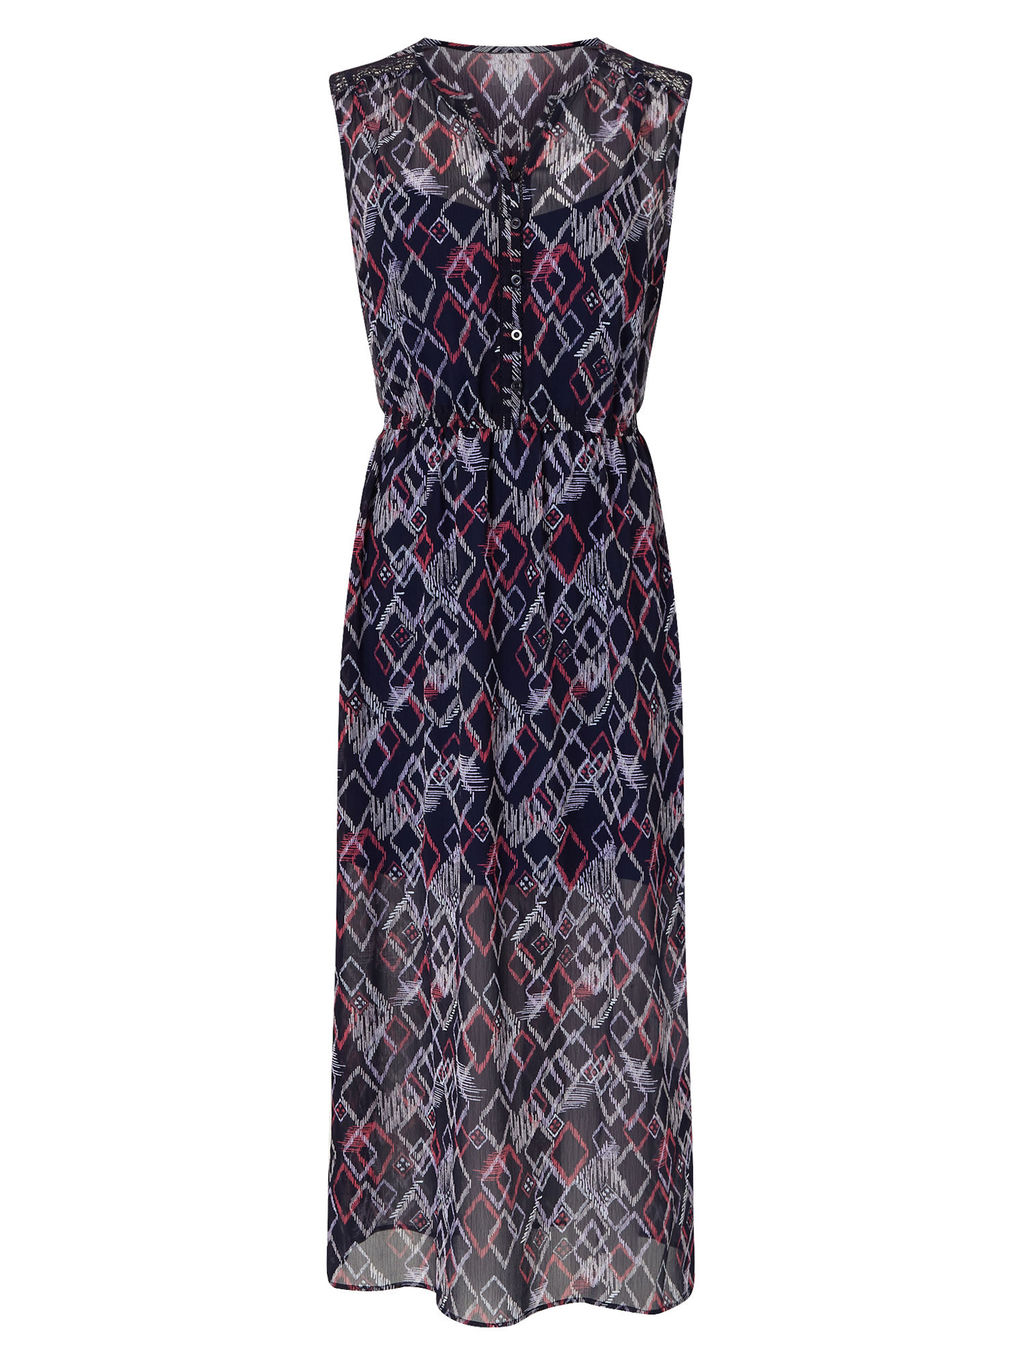 Diamond Print Dress - style: shift; length: calf length; neckline: v-neck; sleeve style: sleeveless; waist detail: belted waist/tie at waist/drawstring; secondary colour: light grey; predominant colour: black; occasions: evening; fit: body skimming; fibres: cotton - stretch; sleeve length: sleeveless; texture group: sheer fabrics/chiffon/organza etc.; pattern type: fabric; pattern: patterned/print; multicoloured: multicoloured; season: s/s 2016; wardrobe: event